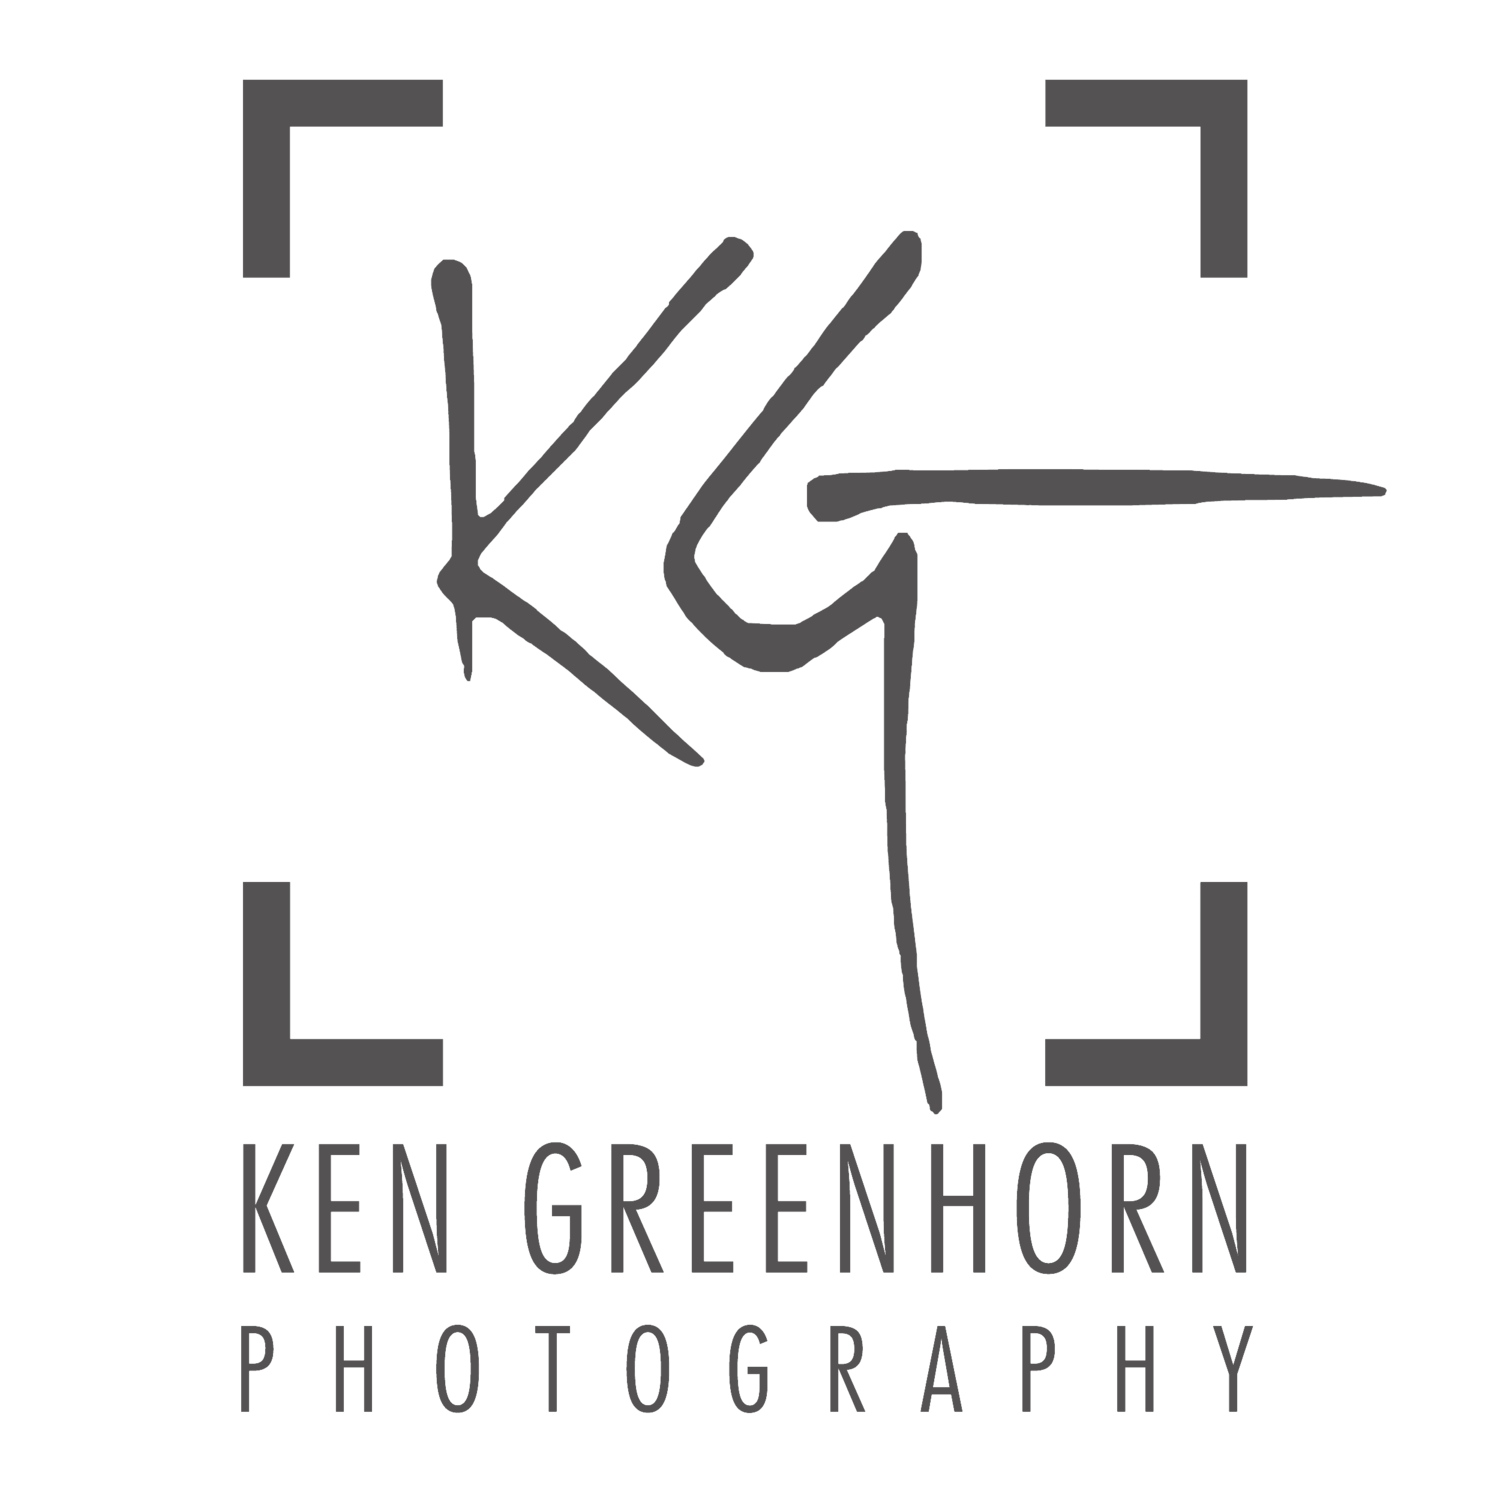 Ken Greenhorn Photography